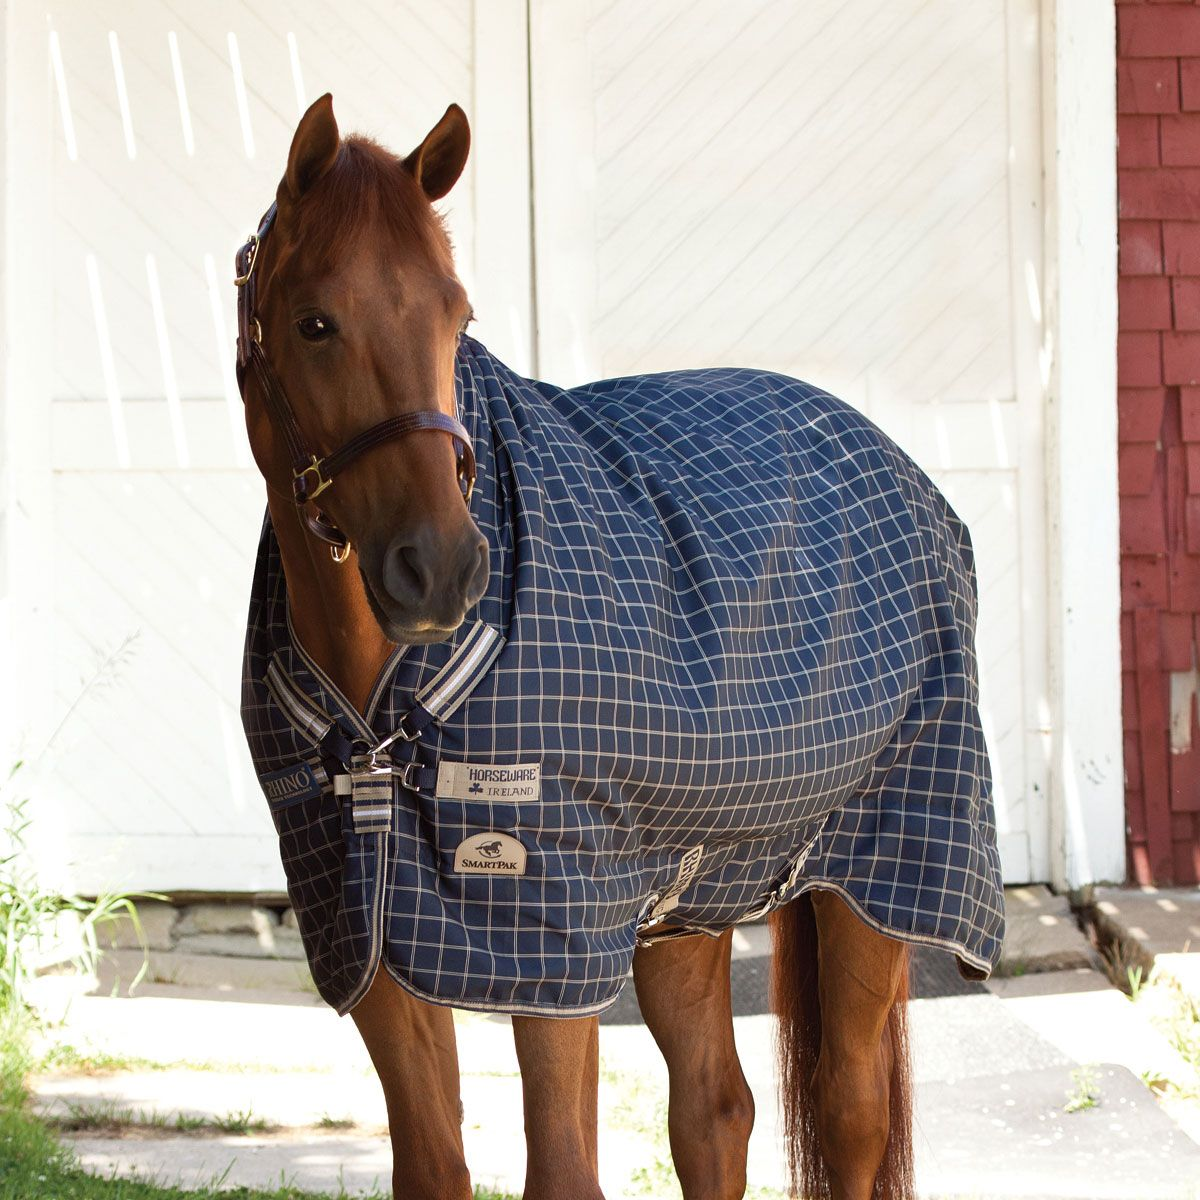 Rhino Smartpak Collection Wug Turnout I Want One So Bad Have To Sell The Rambo First Though Smartpak Smartpak Equine Horse Blankets